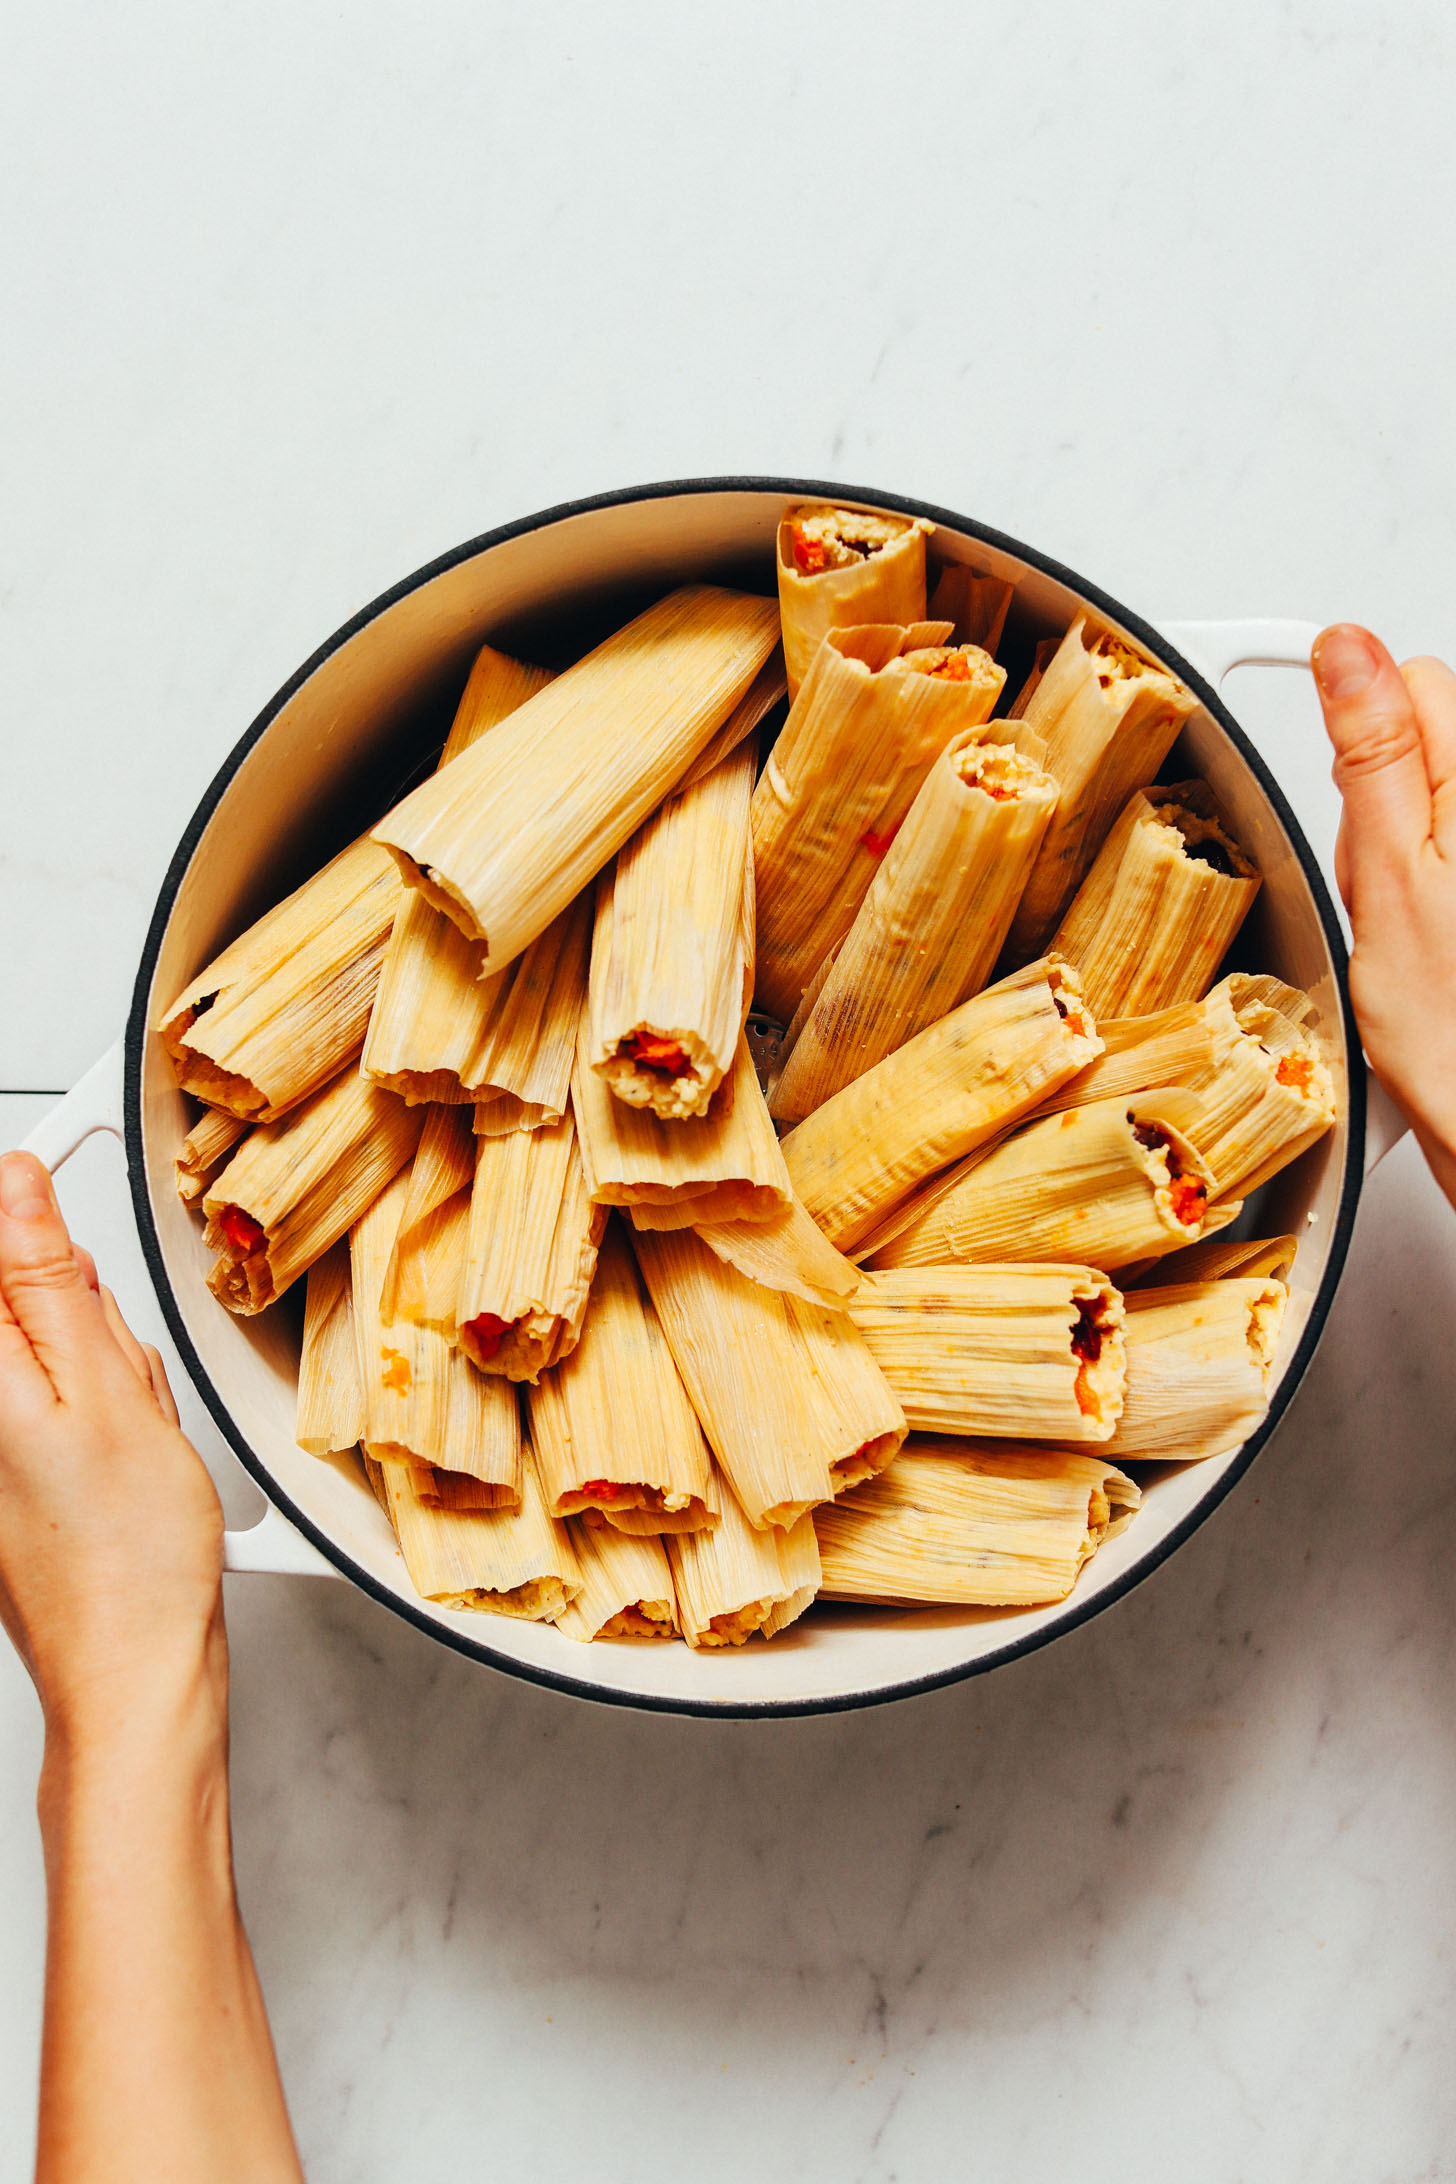 Holding a pot of homemade tamales for our tutorial on How to Make Tamales